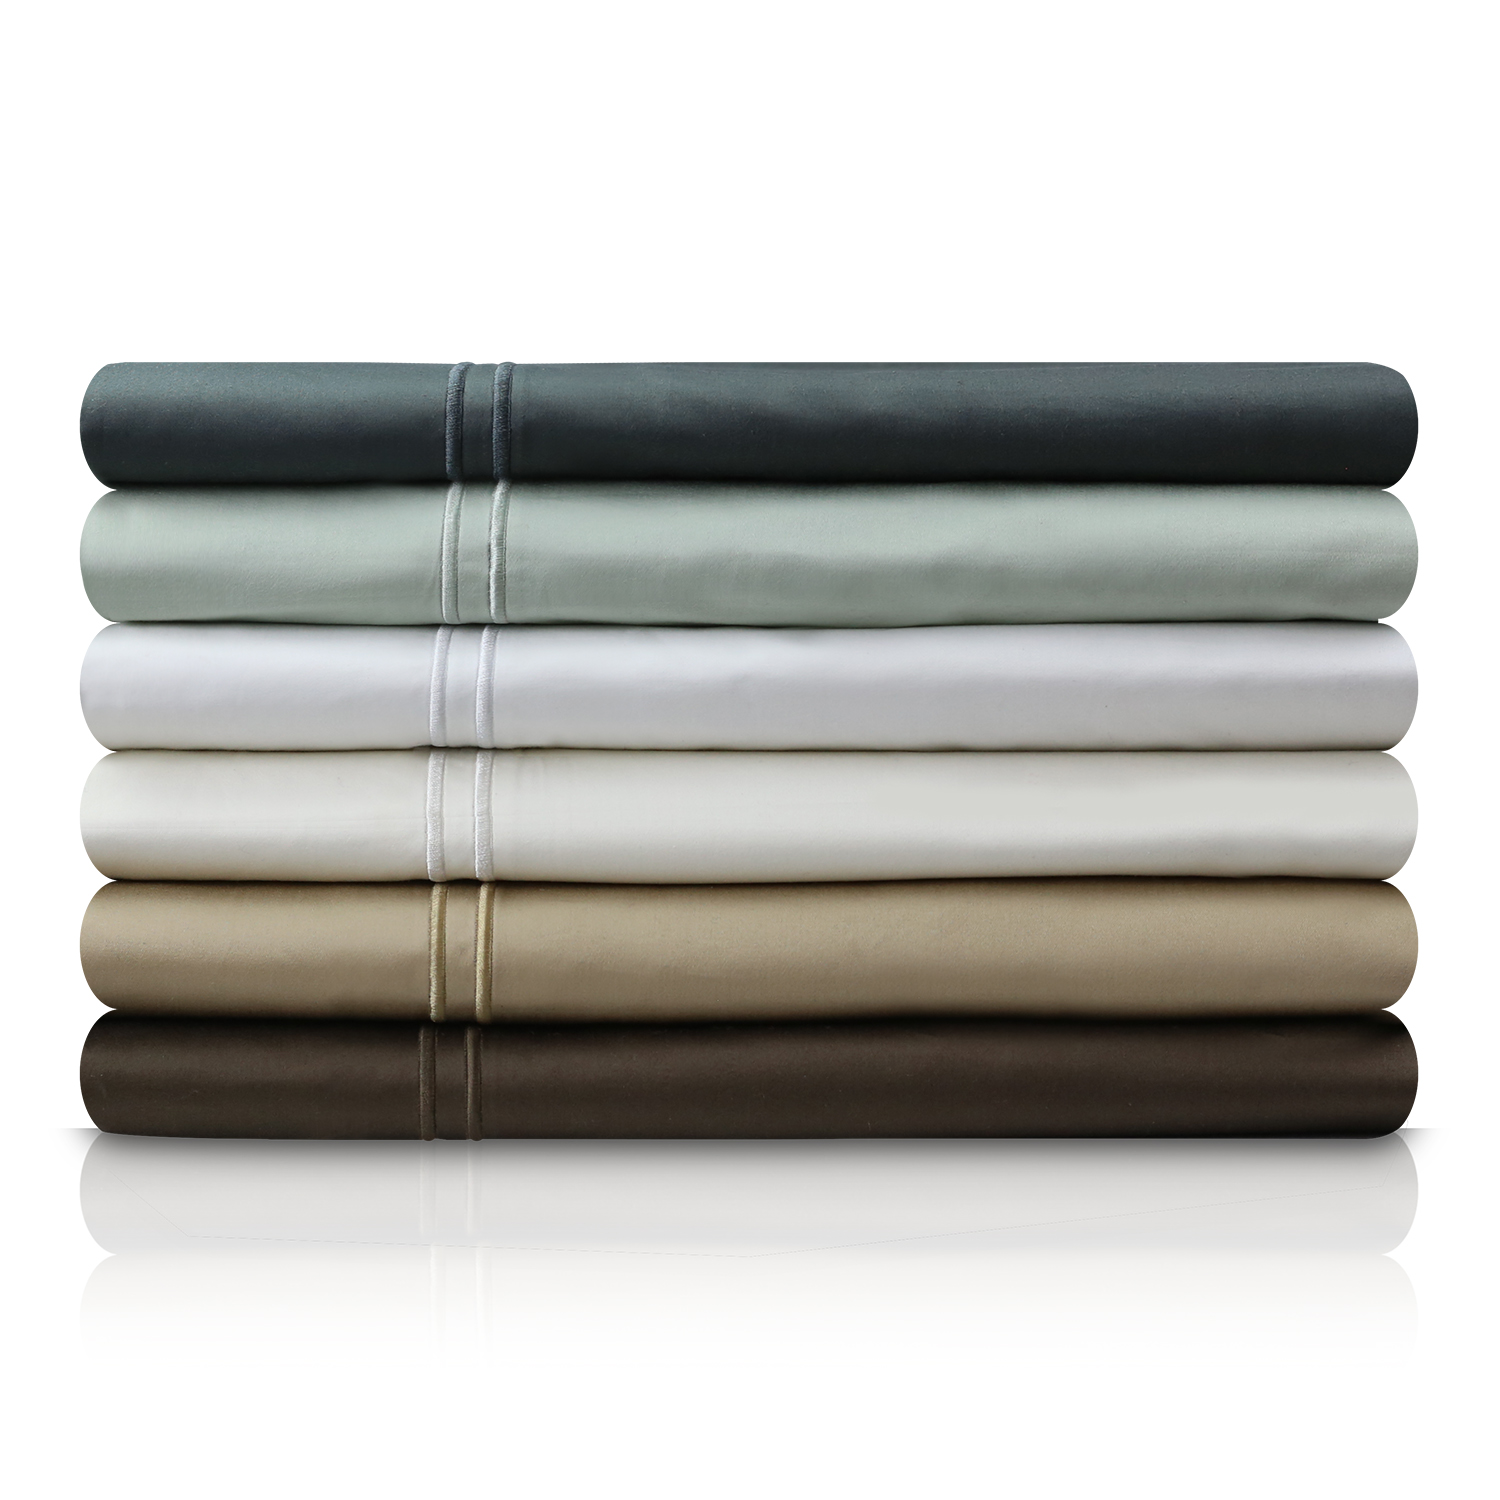 Egyptian Cotton Sheets Bed Bath and Beyond | Hotel Collection Egyptian Cotton Sheets | Egyptian Cotton Sheets